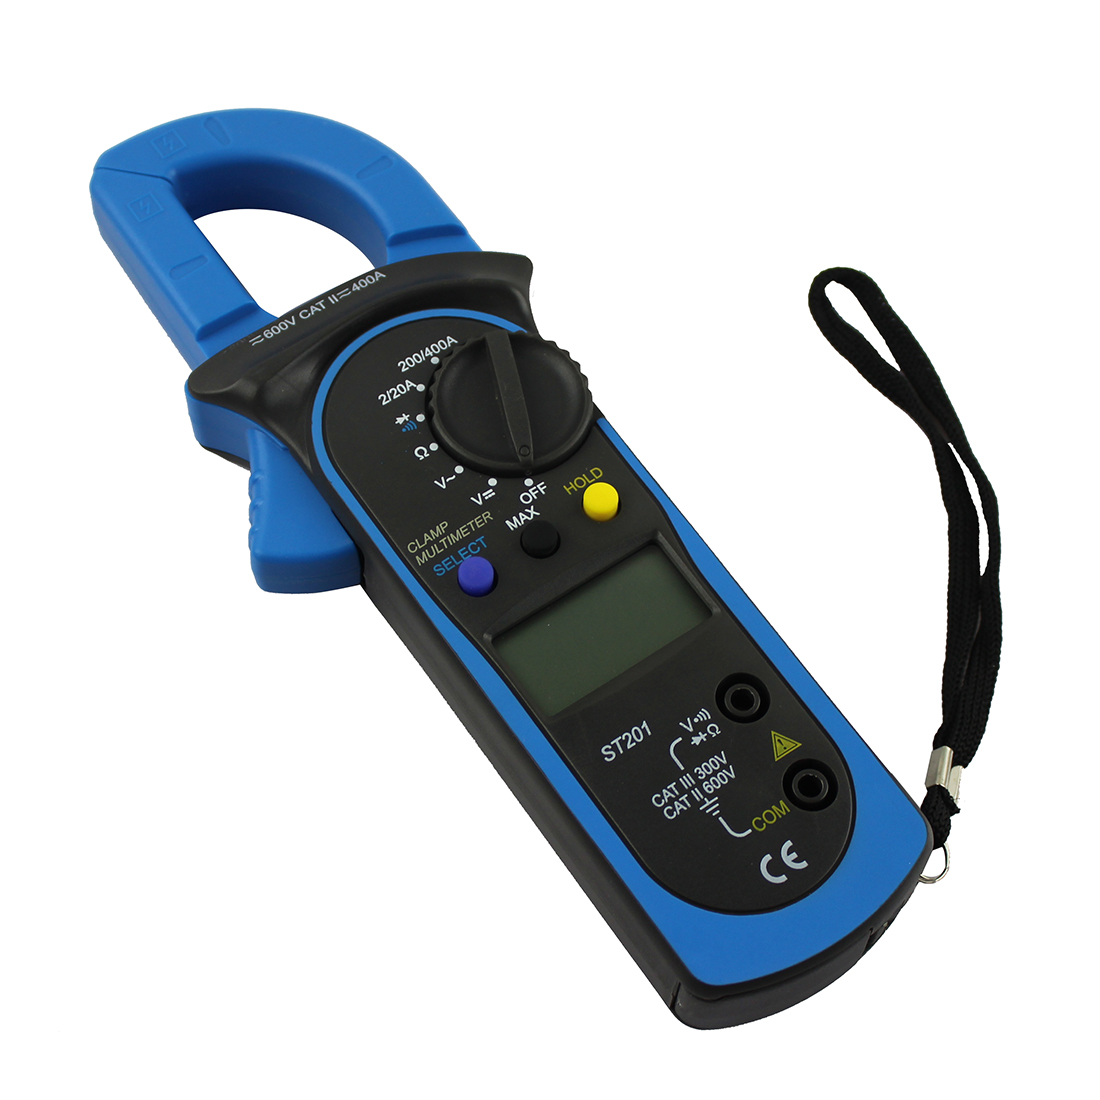 Ac Dc Clamp Meter : Digital clamp multimeter ohm amp meter ac dc current